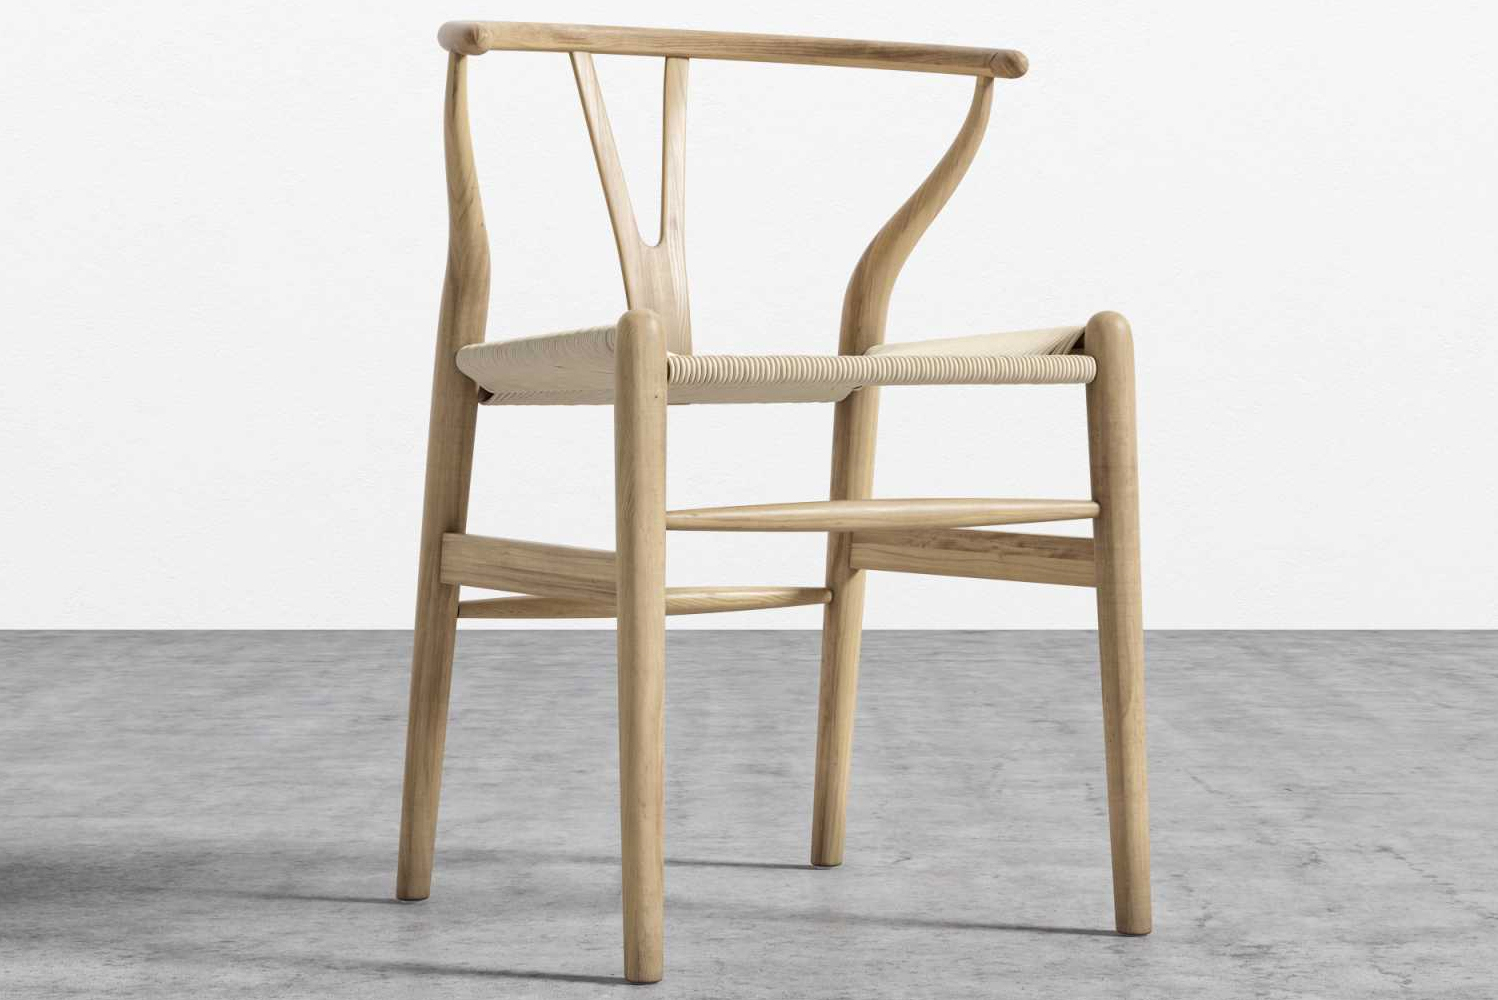 As offered by Rove Concepts, the chair has fluid lines and minimalist style that create an airy feel while the Y-back creates an organic impression.